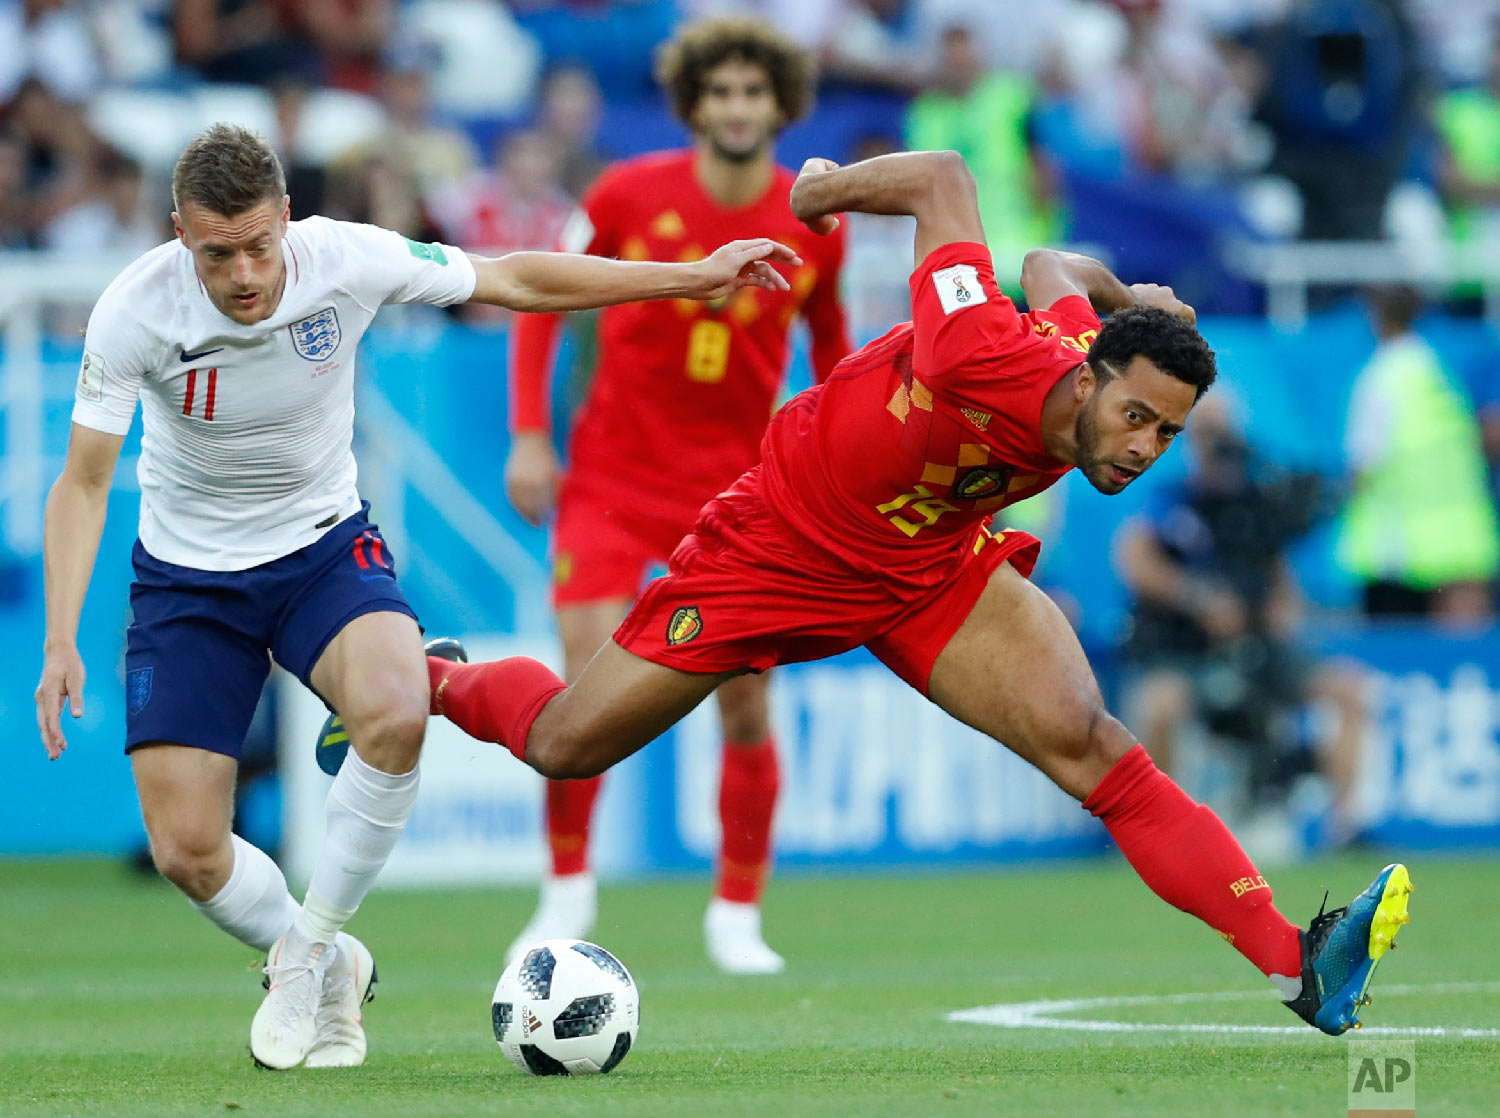 England's Jamie Vardy, left, and Belgium's Moussa Dembele challenge for the ball during the group G match between England and Belgium at the 2018 soccer World Cup in the Kaliningrad Stadium in Kaliningrad, Russia, Thursday, June 28, 2018. (AP Photo/Hassan Ammar)